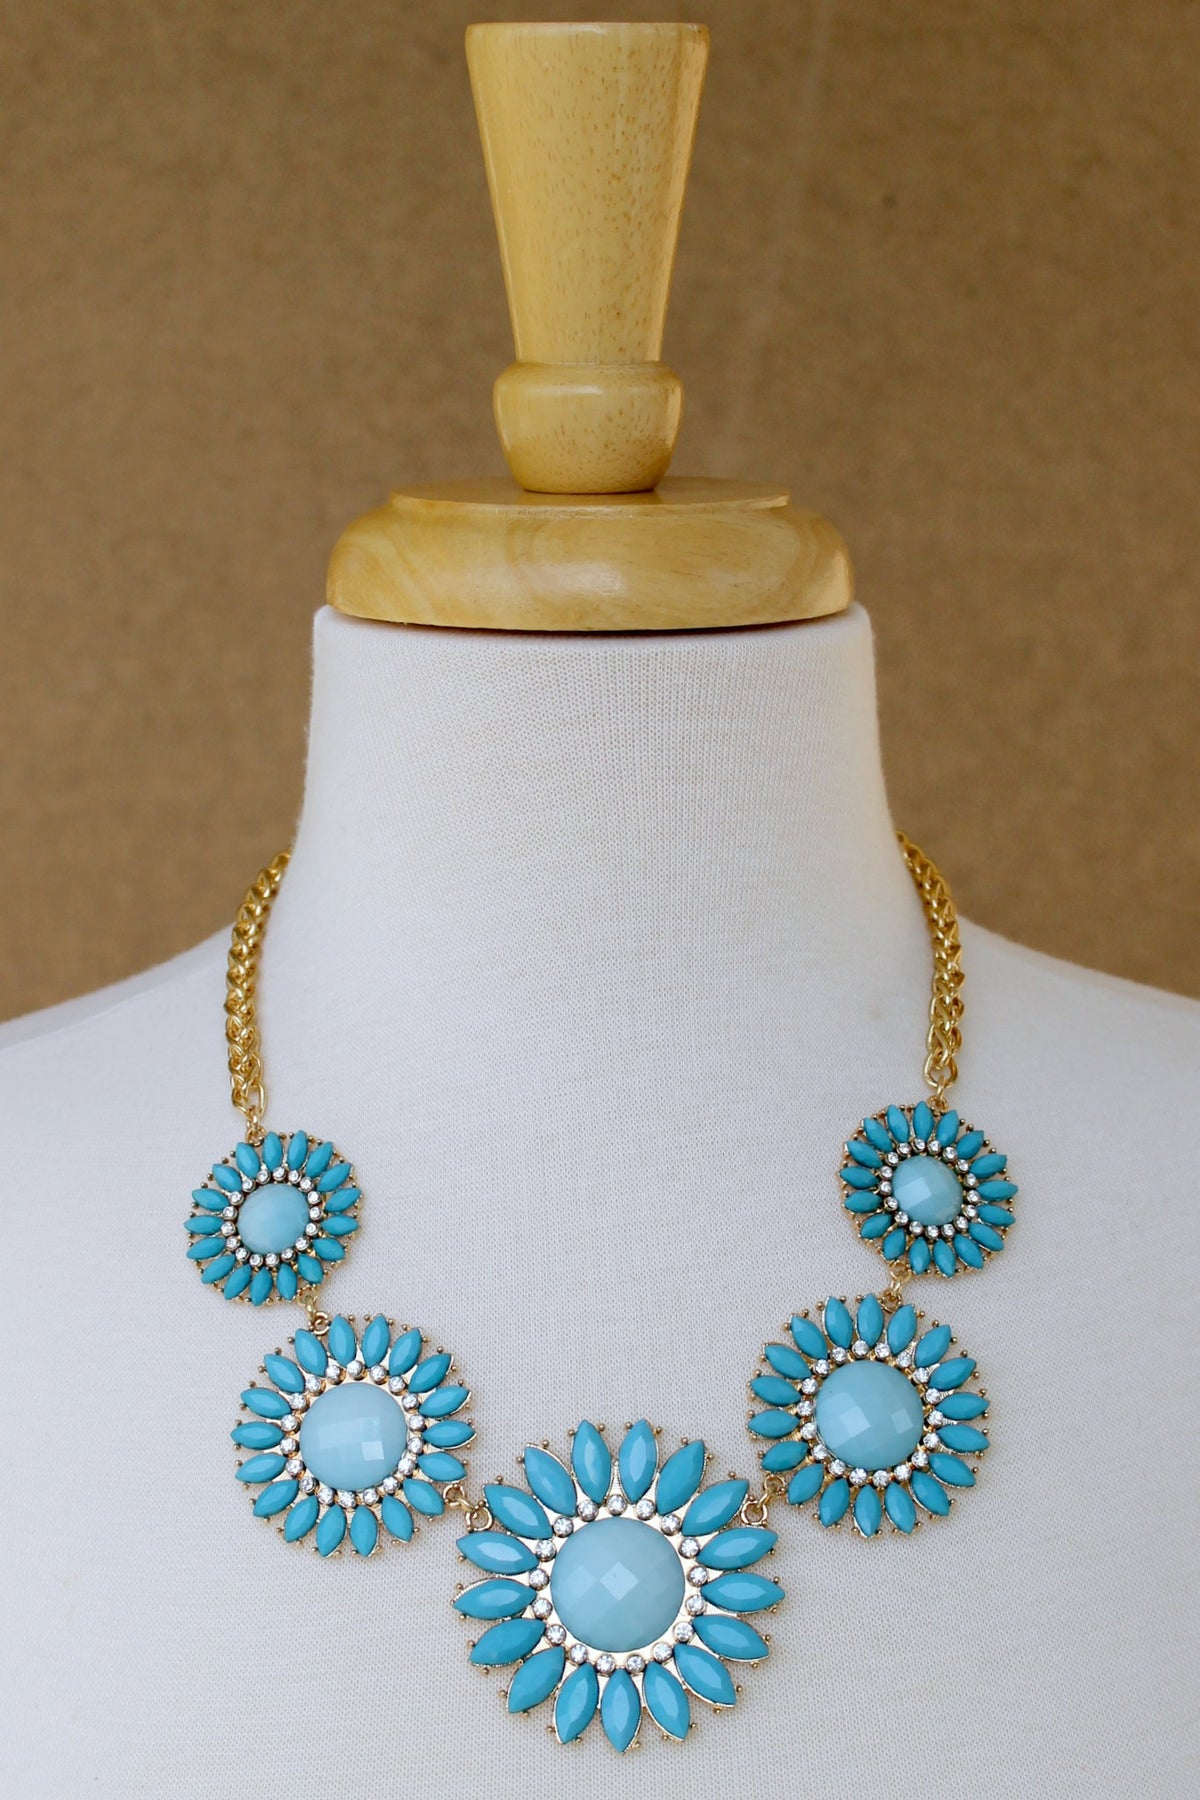 Graduated Daisy Statement Necklace, Aqua